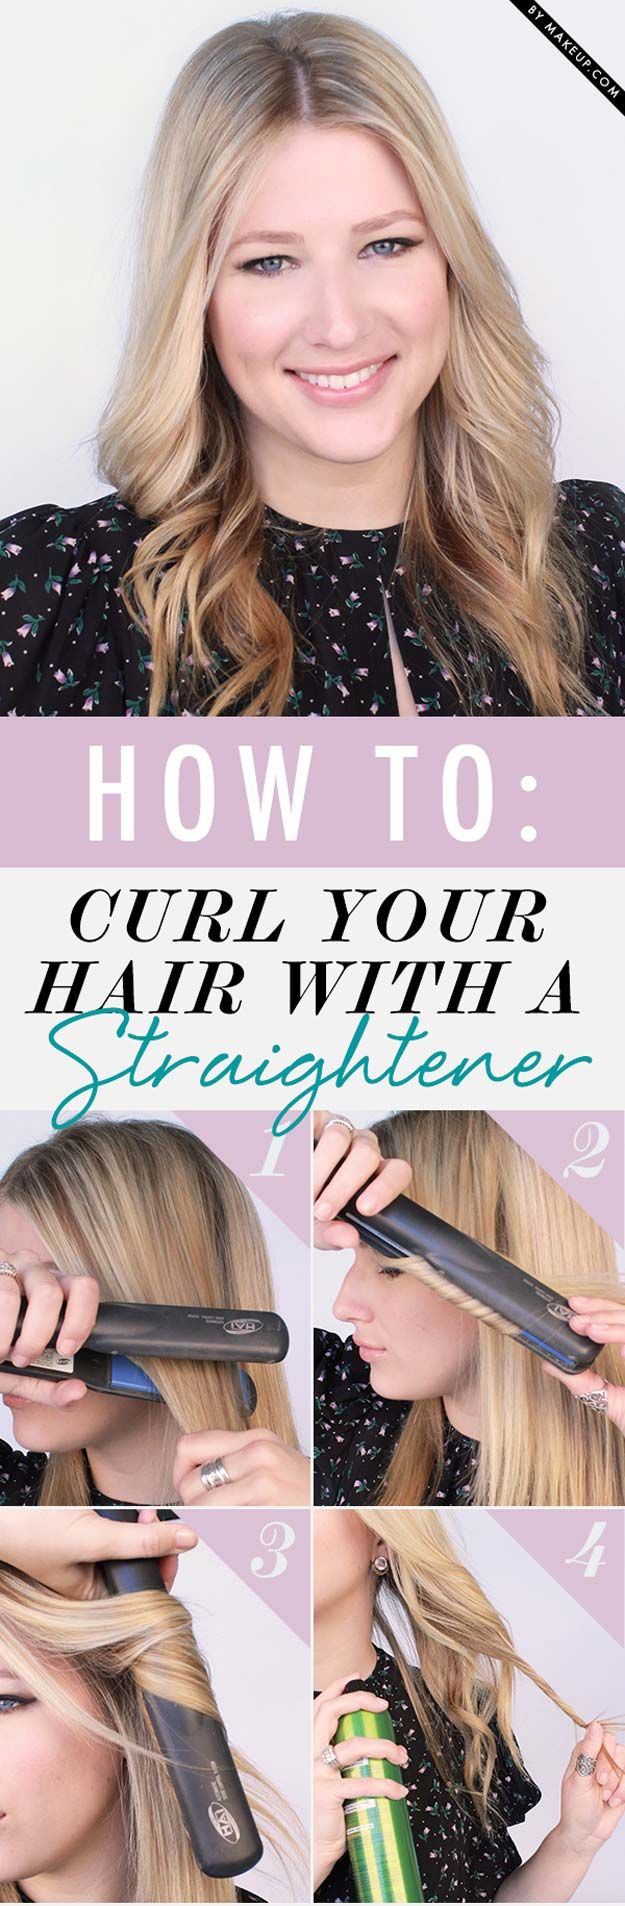 Hair Straightening Tutorials - How To: Curl Your Hair with a Straightener -Looki...